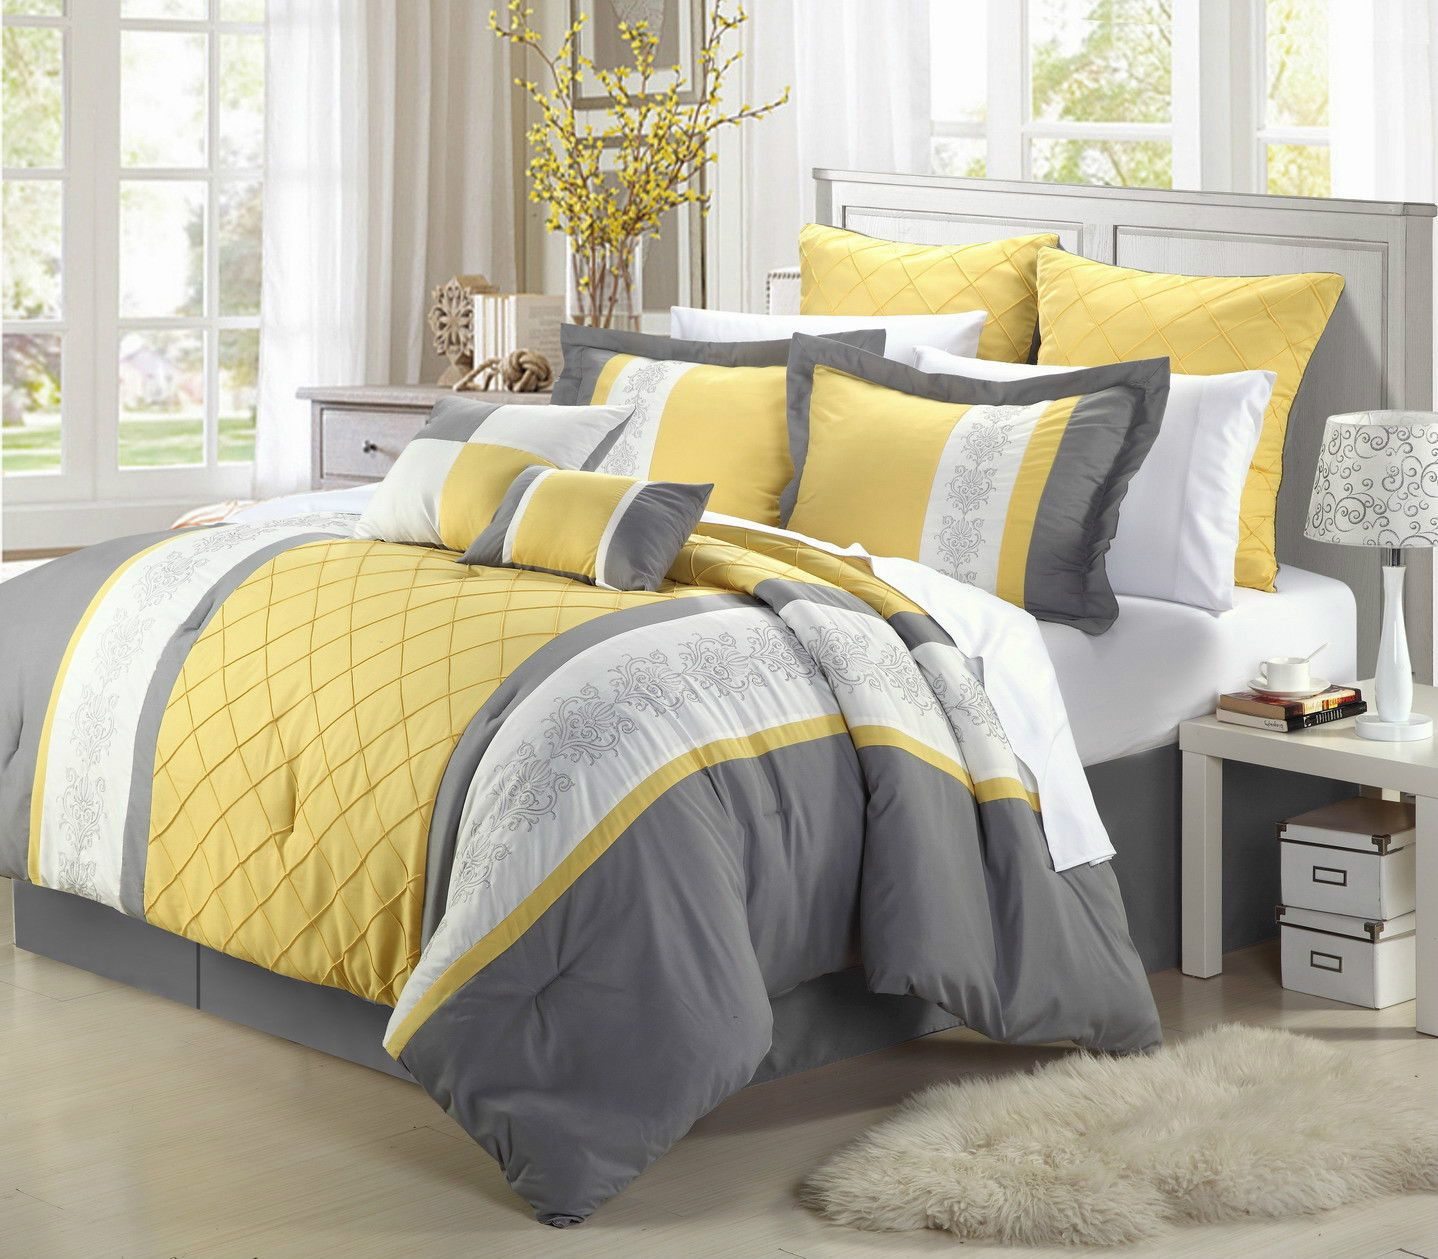 Grey And Yellow Bedding Queen Comforter Sets Yellow And Gray